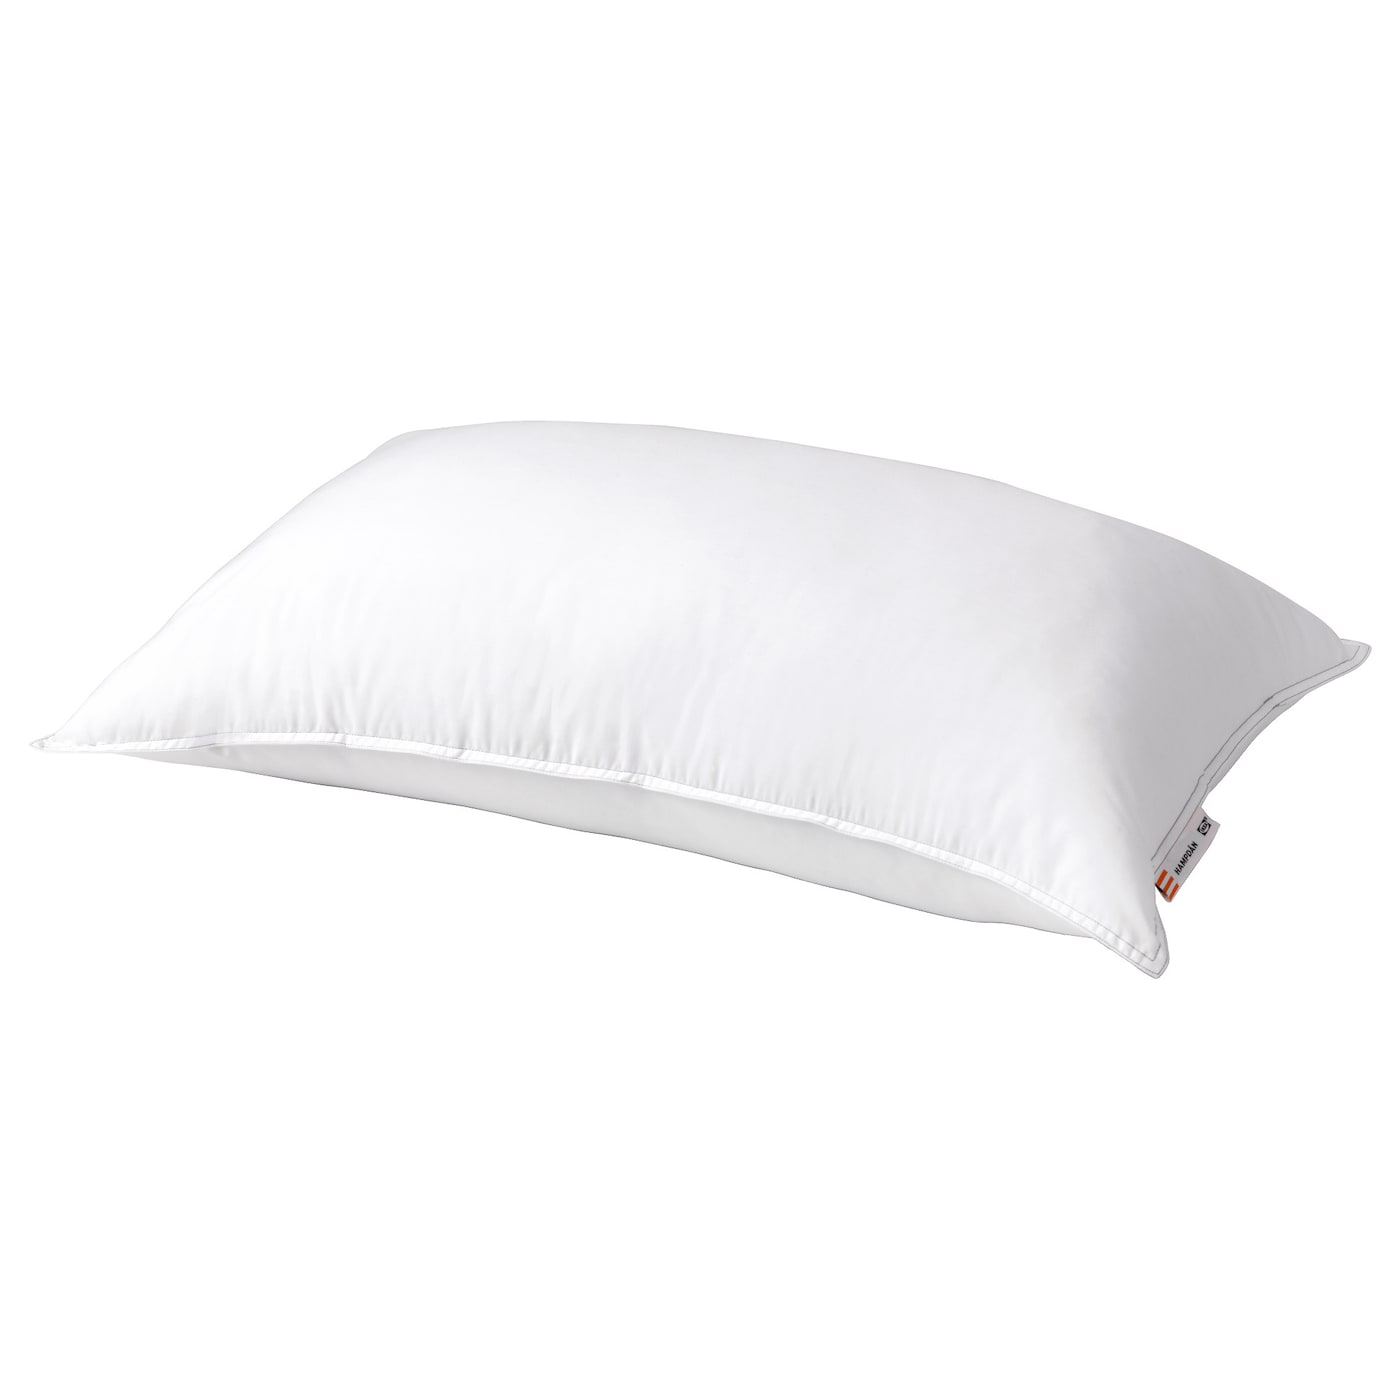 IKEA HAMPDÅN pillow, firmer